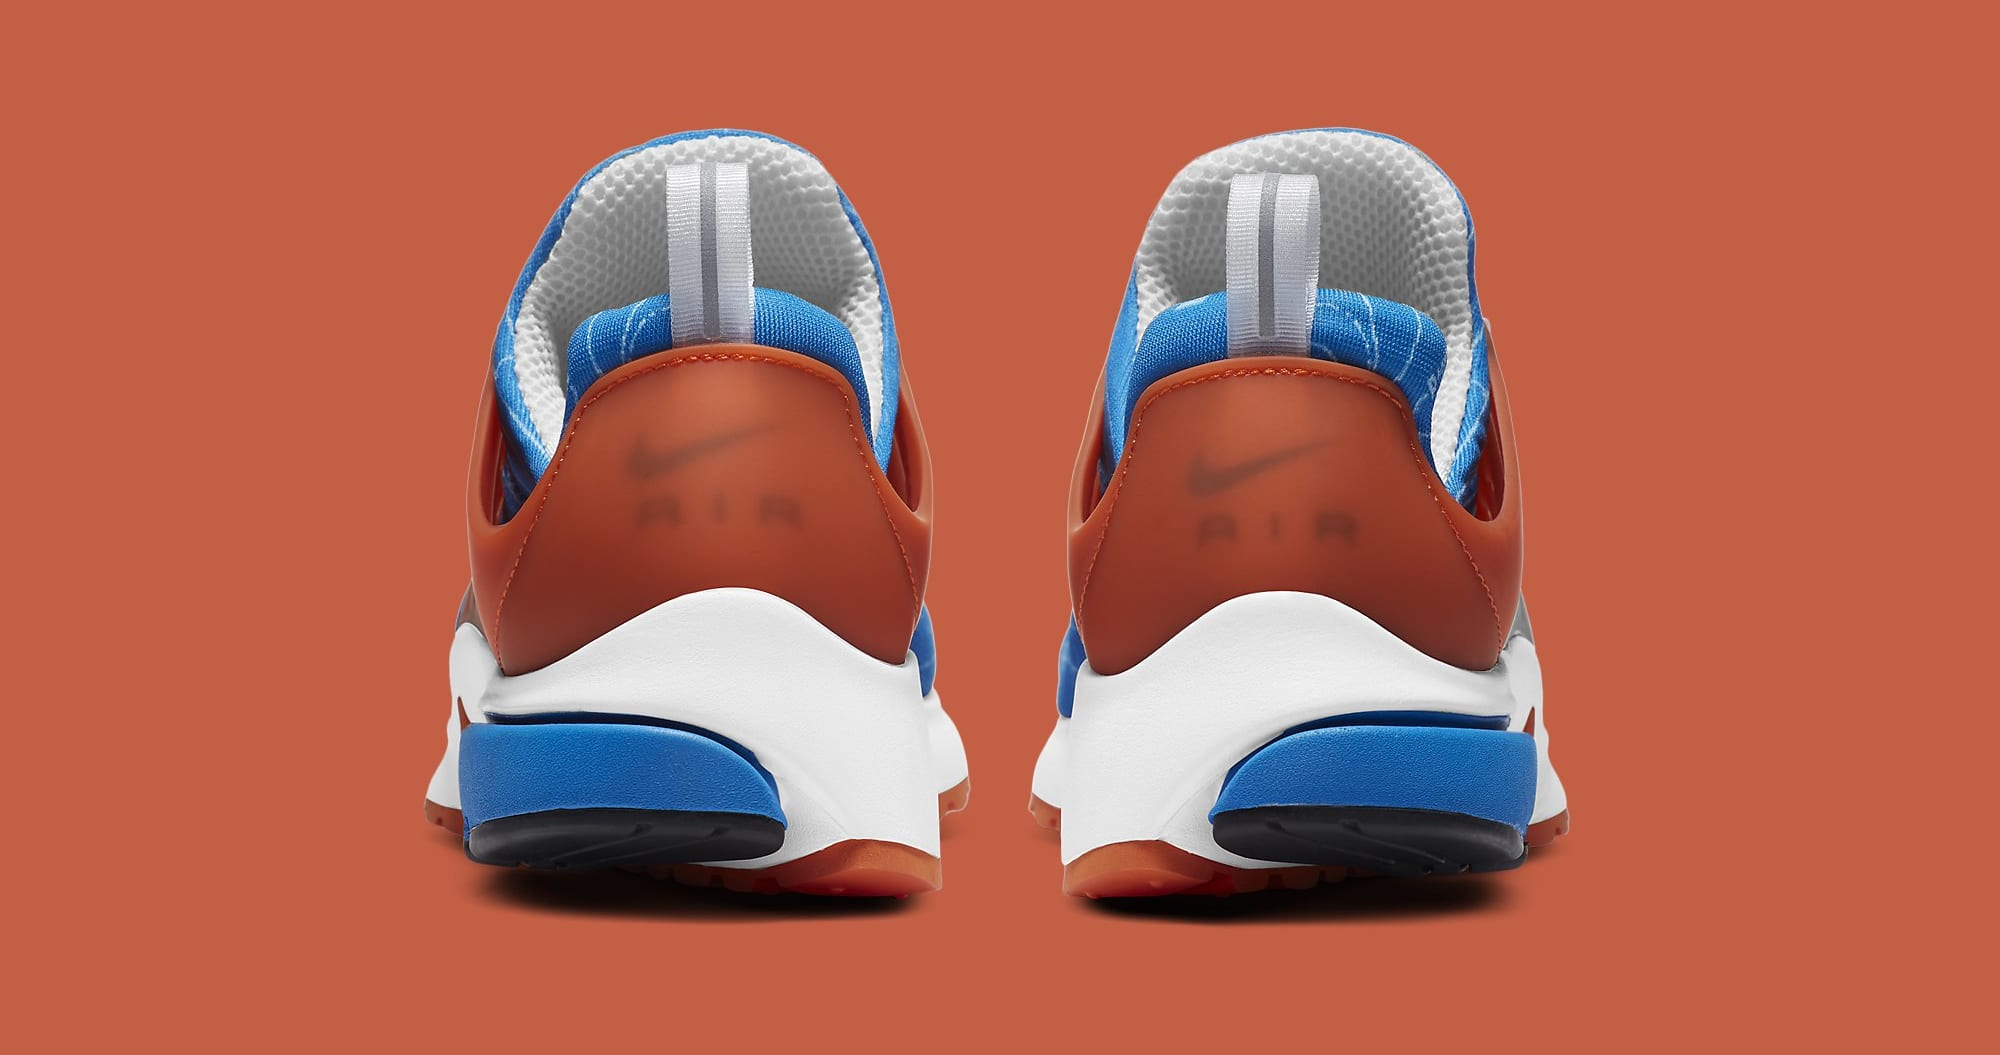 Nike Air Presto 'Soar' CJ1229-401 Heel